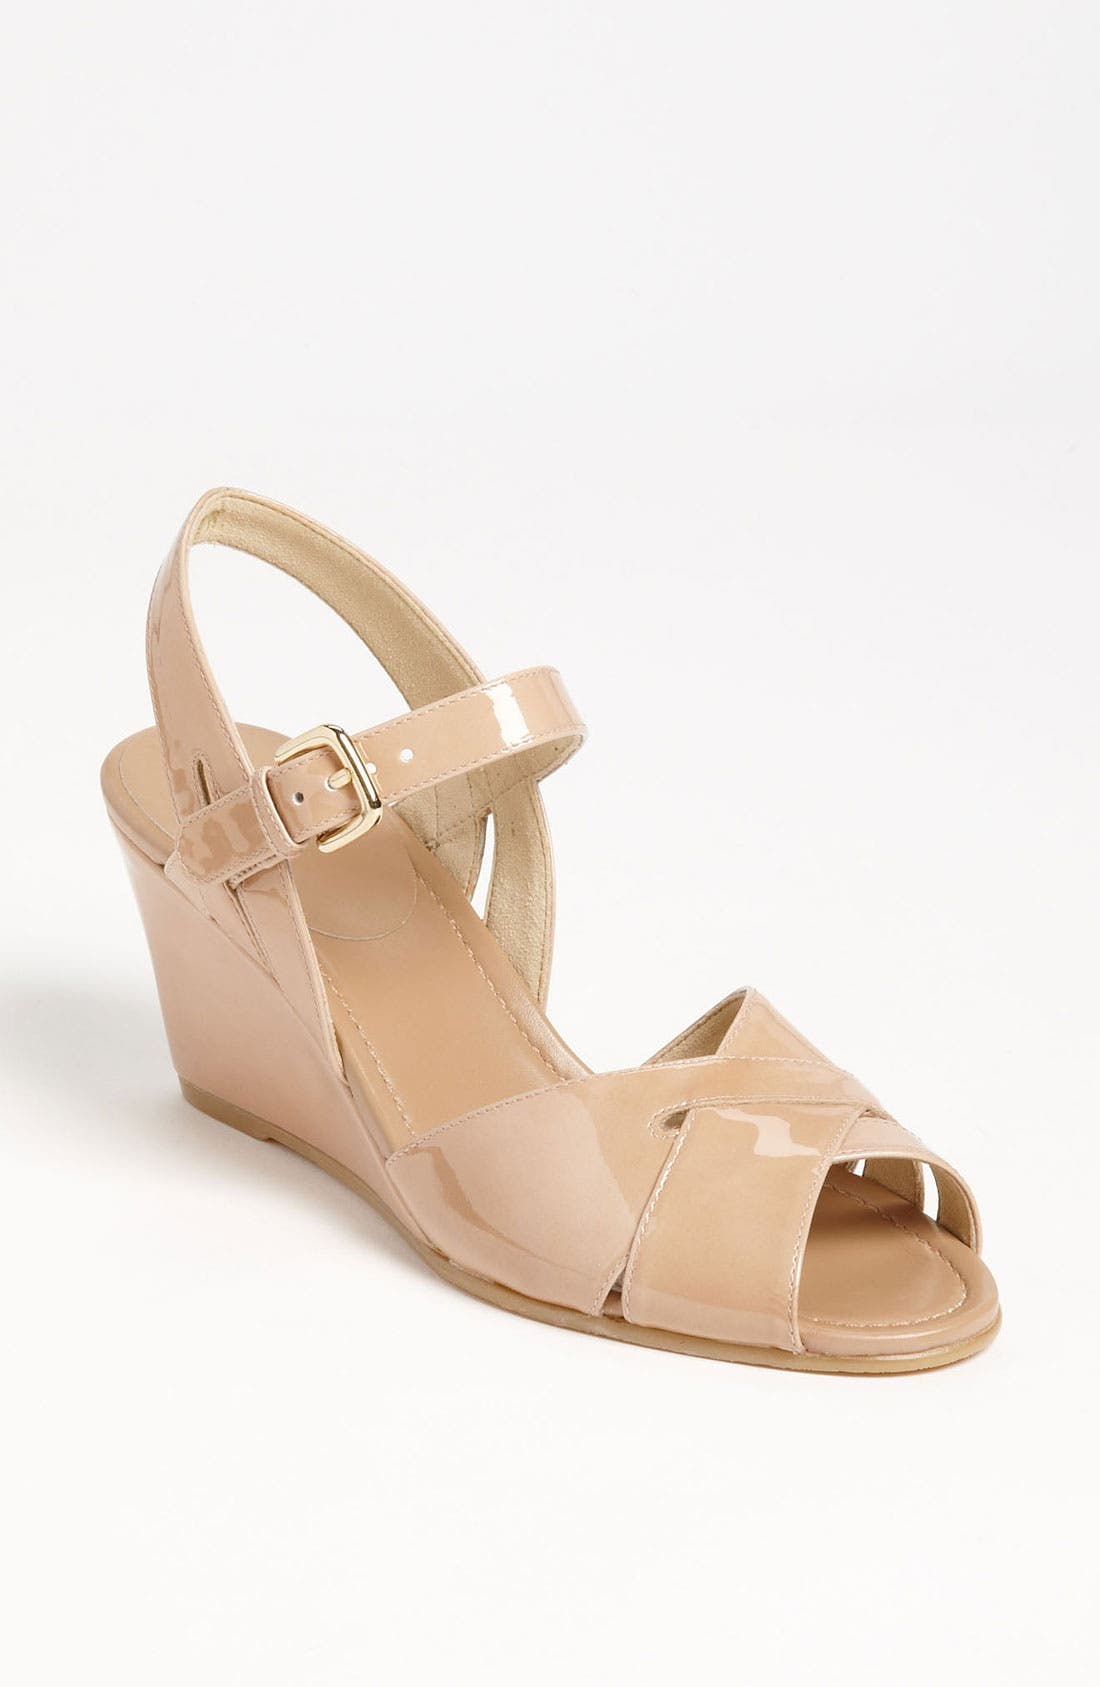 Alternate Image 1 Selected - Stuart Weitzman 'Halley' Wedge